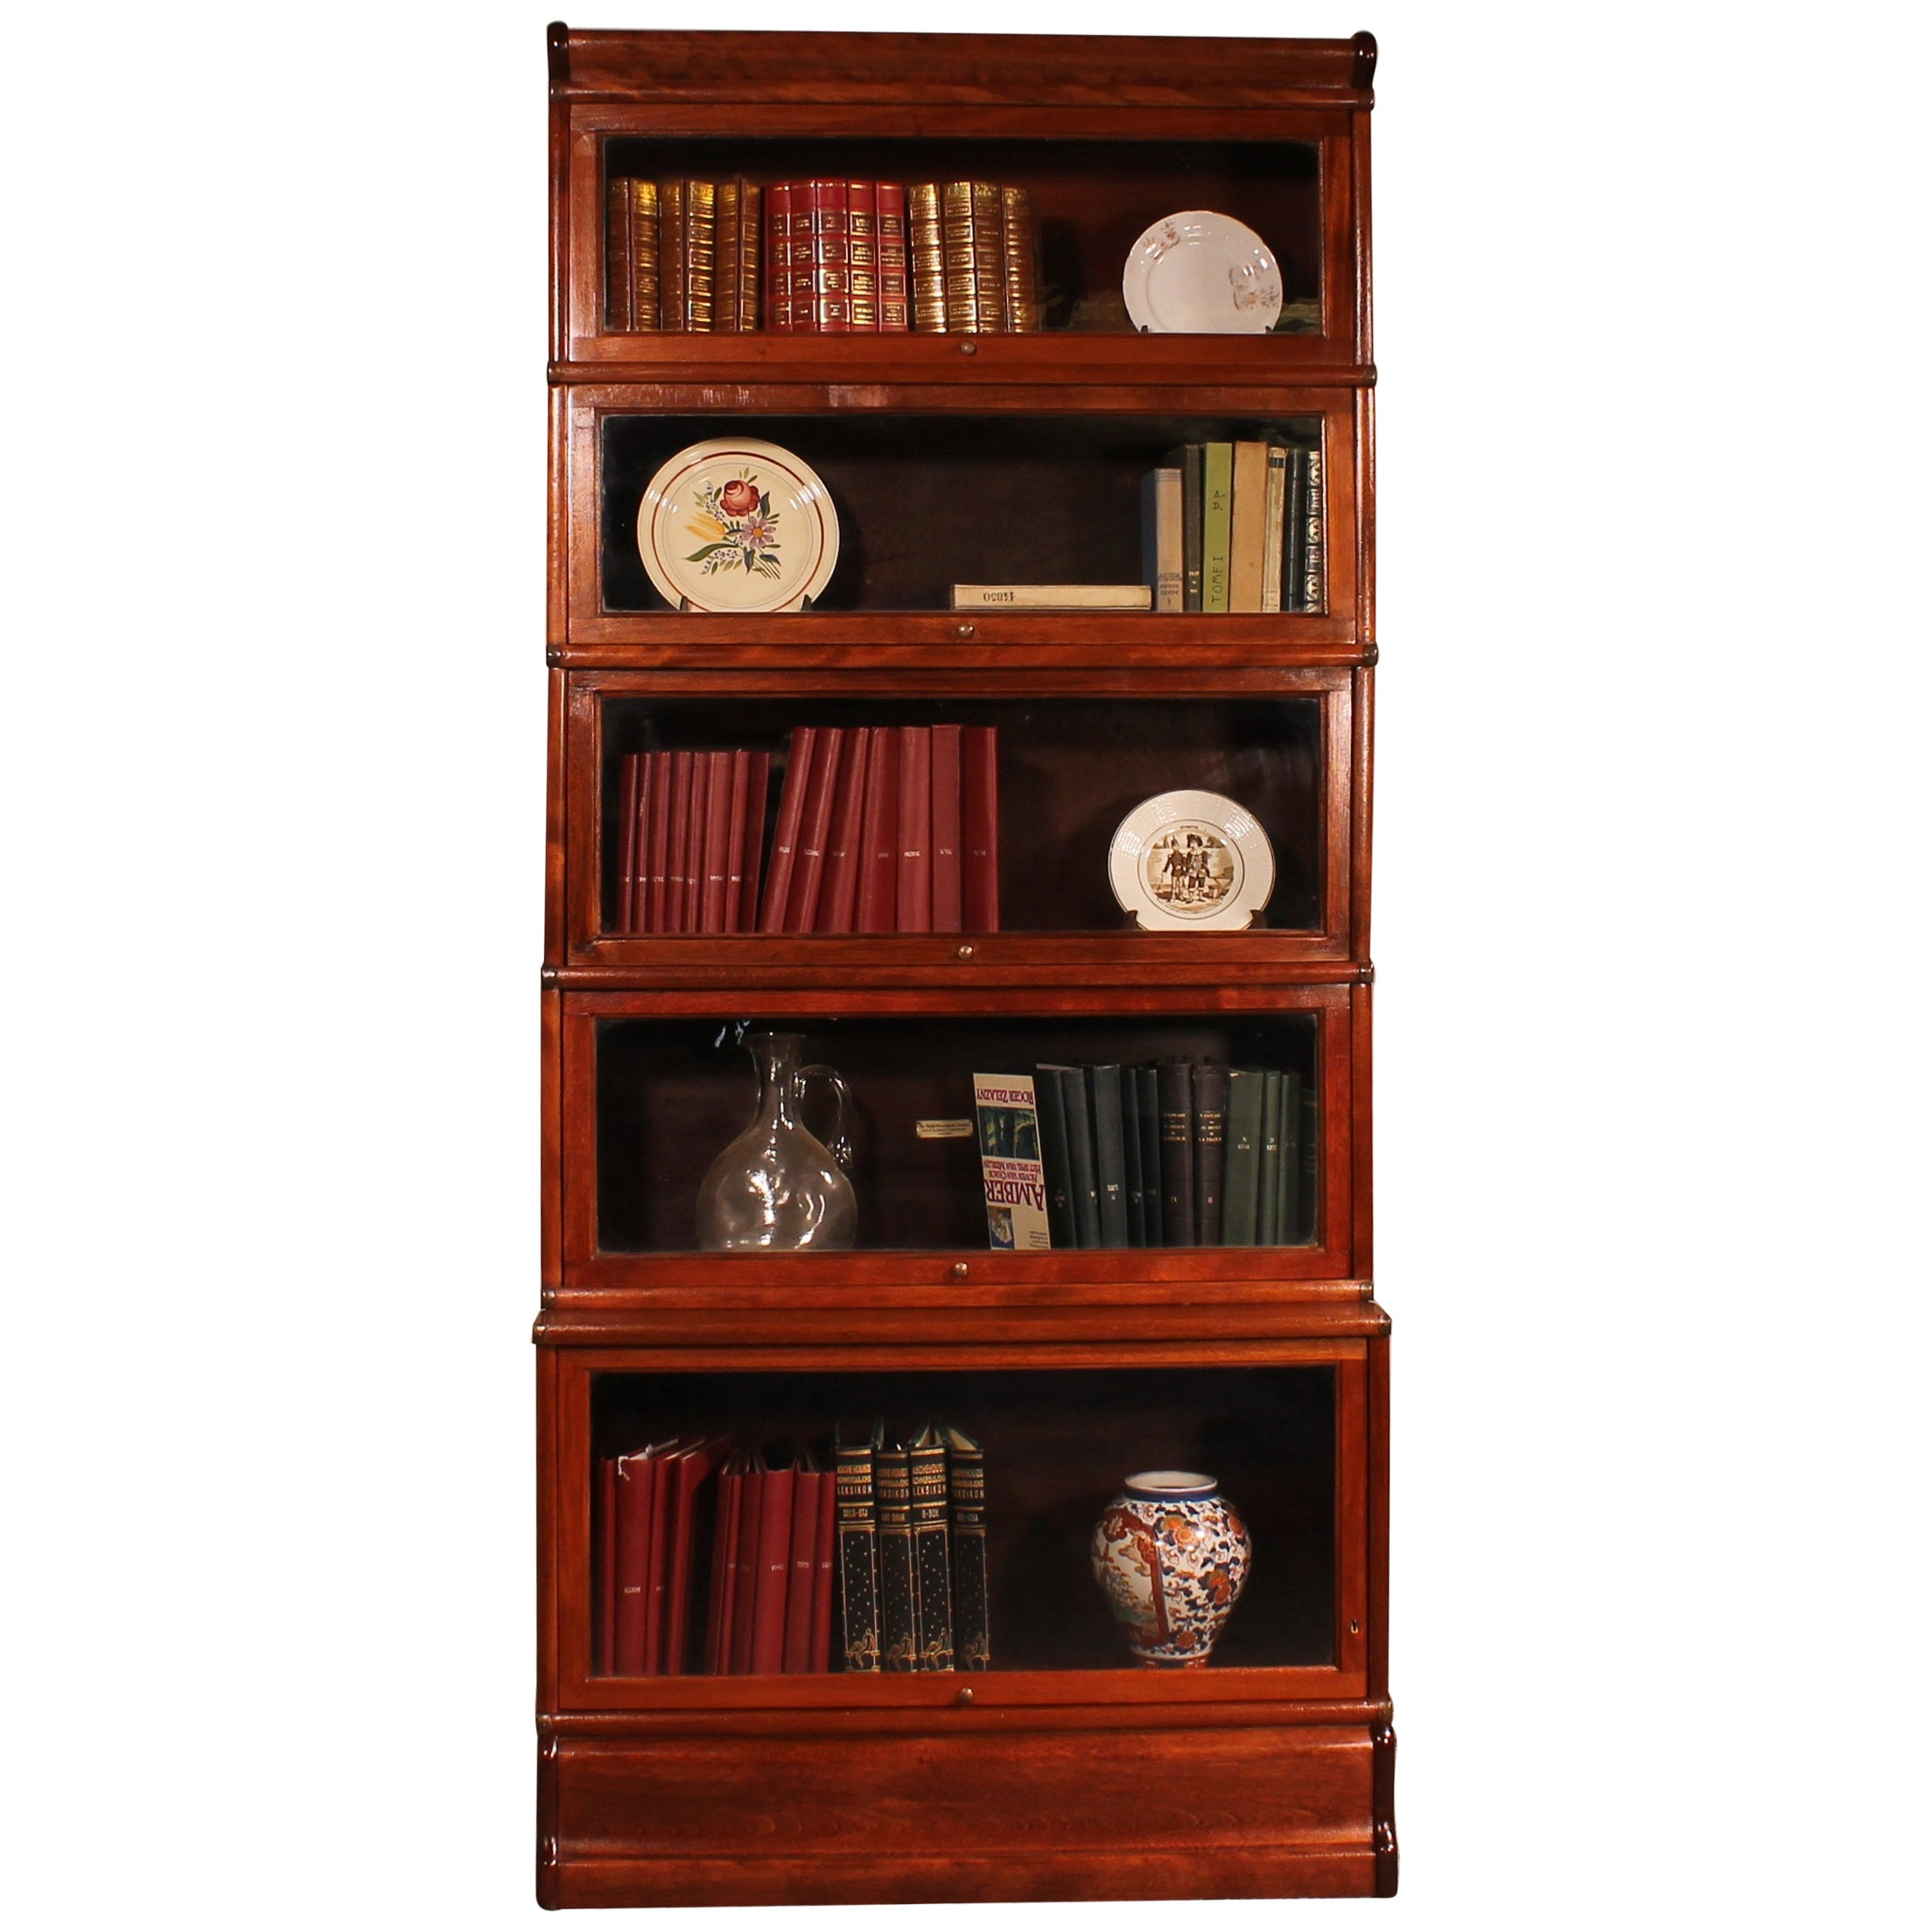 English Stacking Bookcase in Mahogany Globe Wernicke of 5 Elements